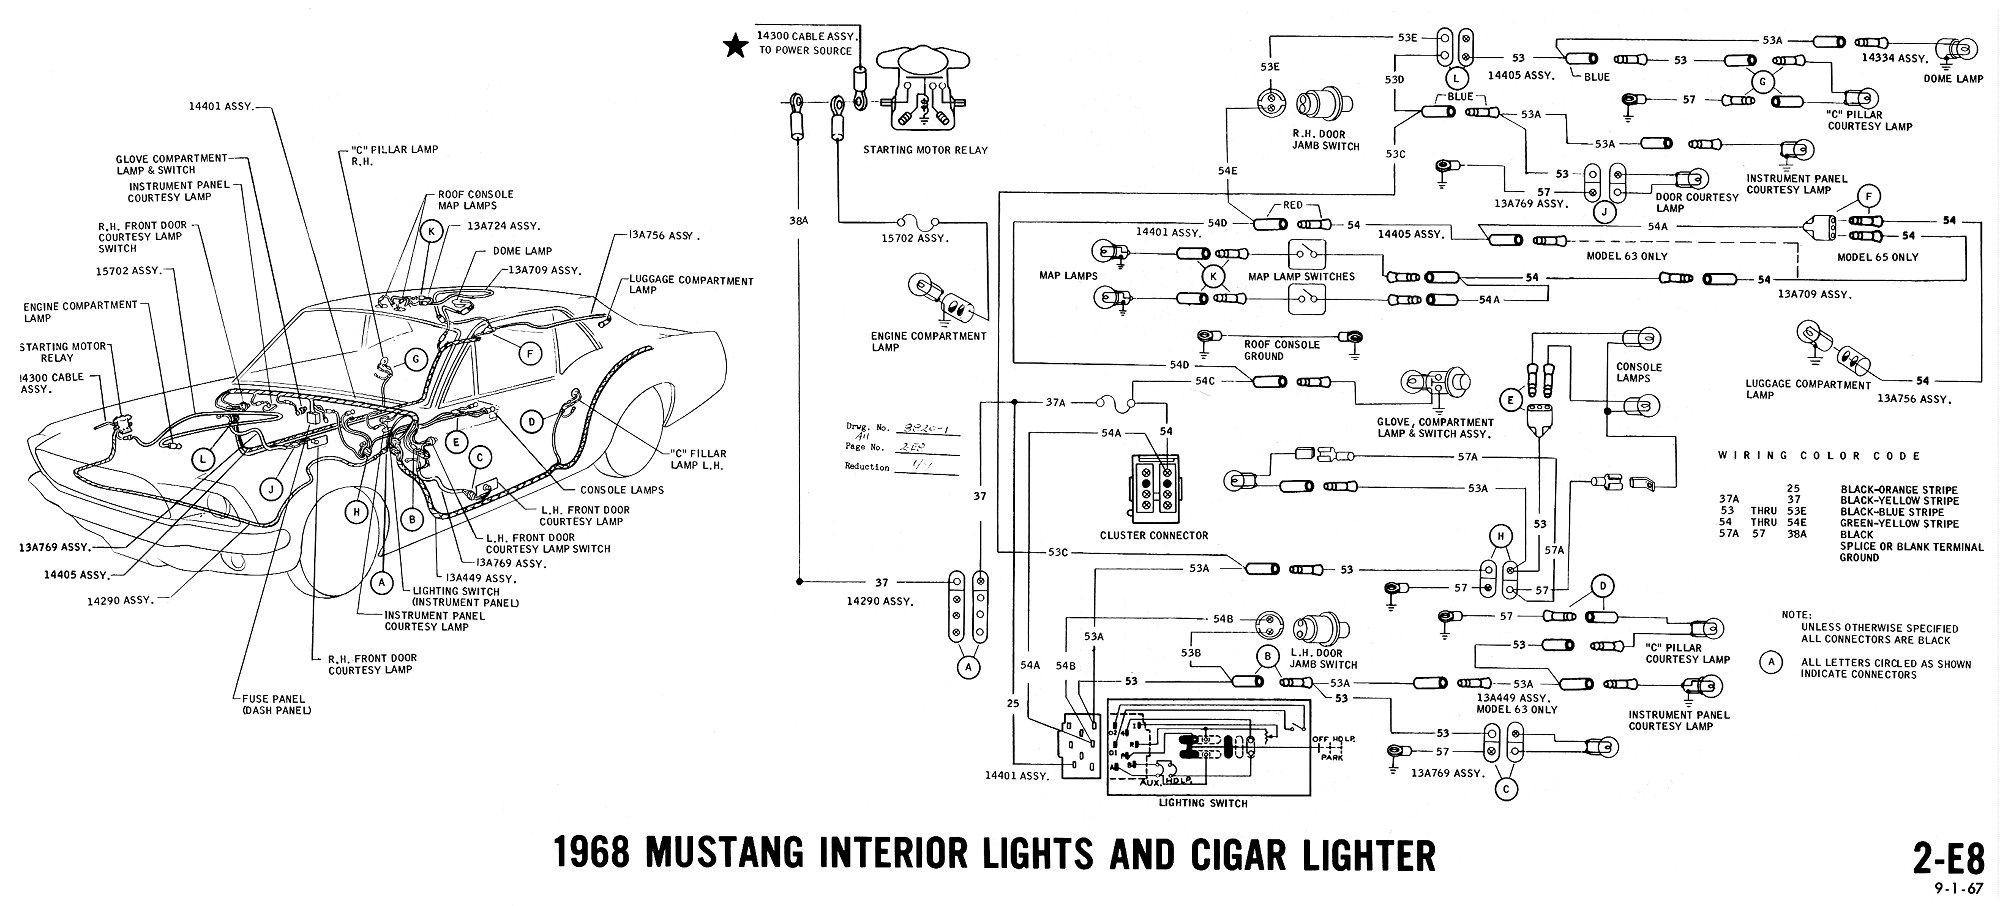 E8 1968 mustang wiring diagrams evolving software 1967 mustang headlight switch wiring diagram at bayanpartner.co